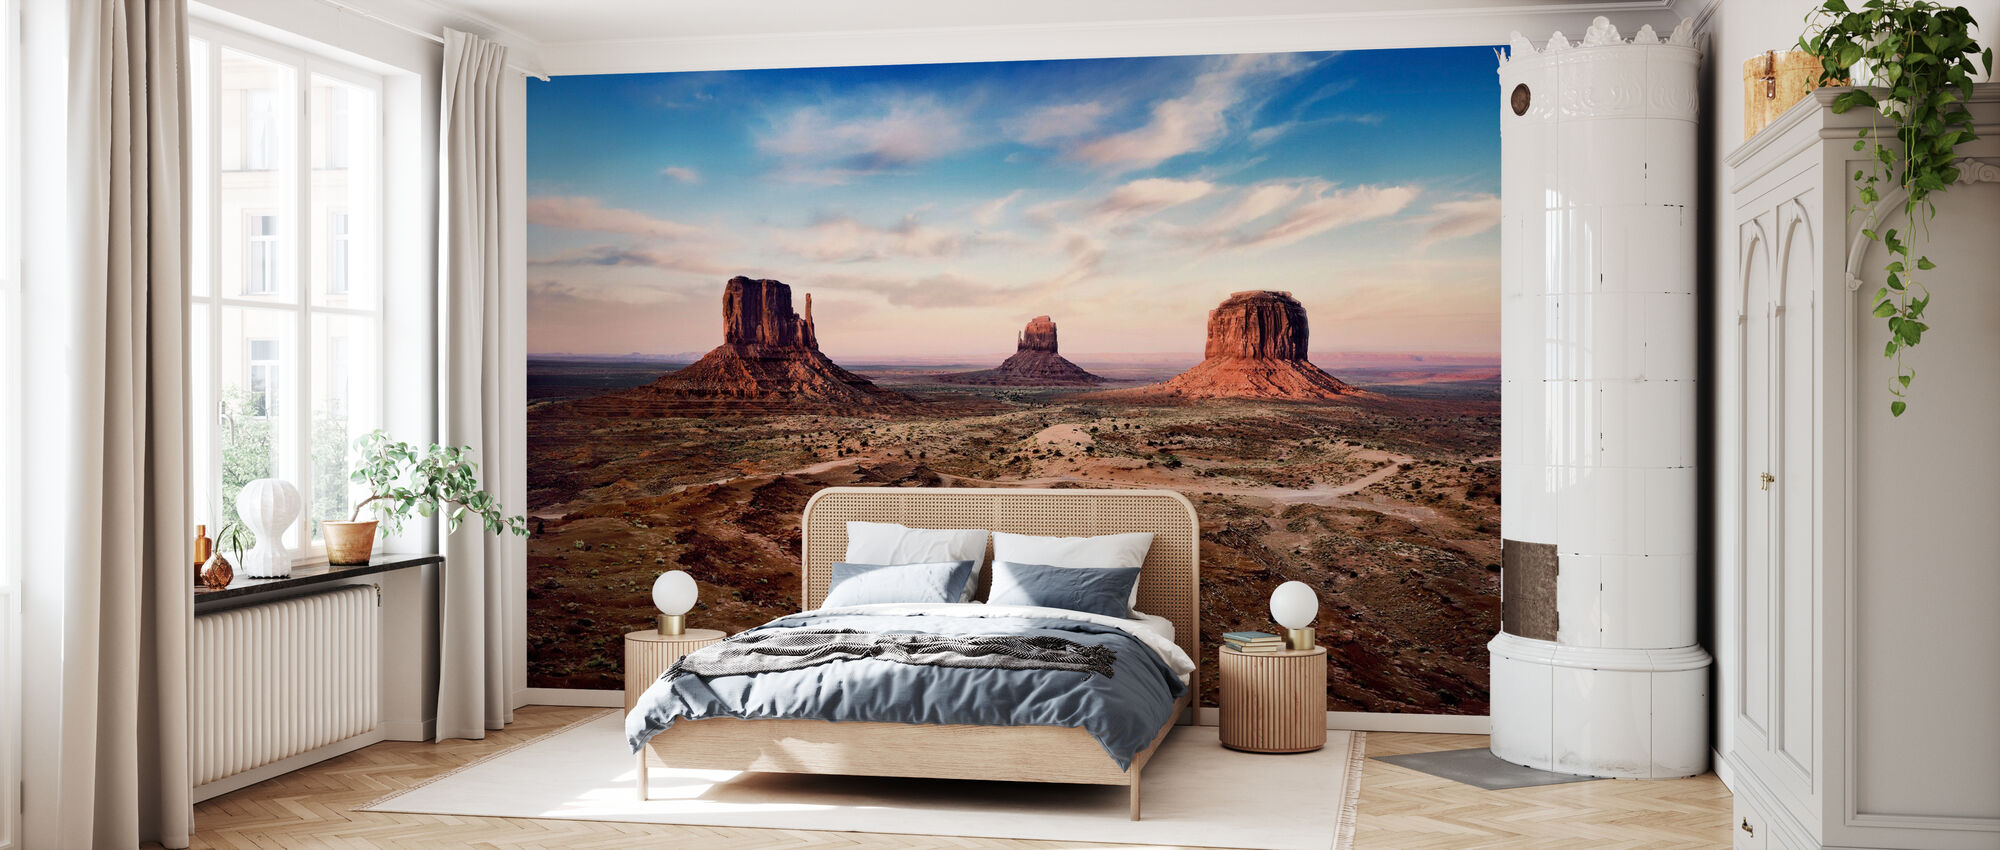 Sunset over Auburn Rocks - Wallpaper - Bedroom